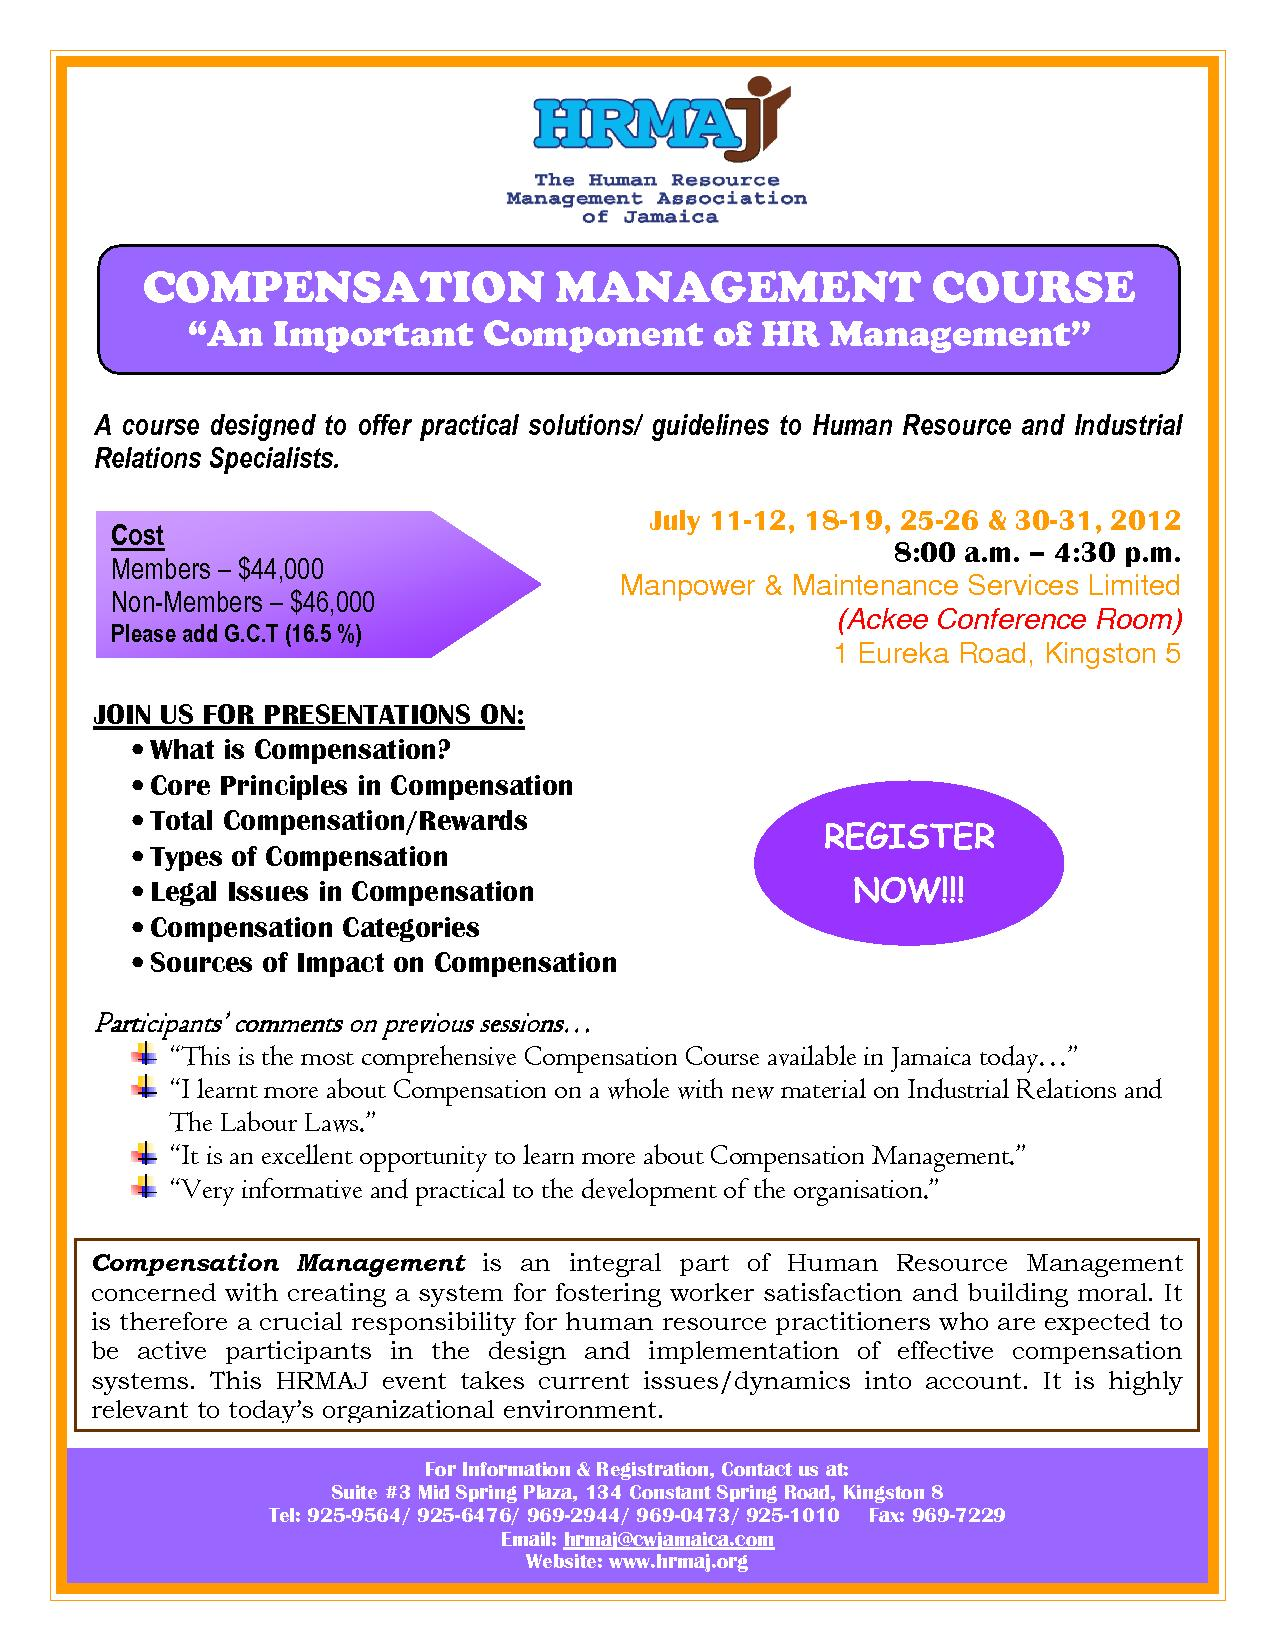 Compensation Management Course 2012